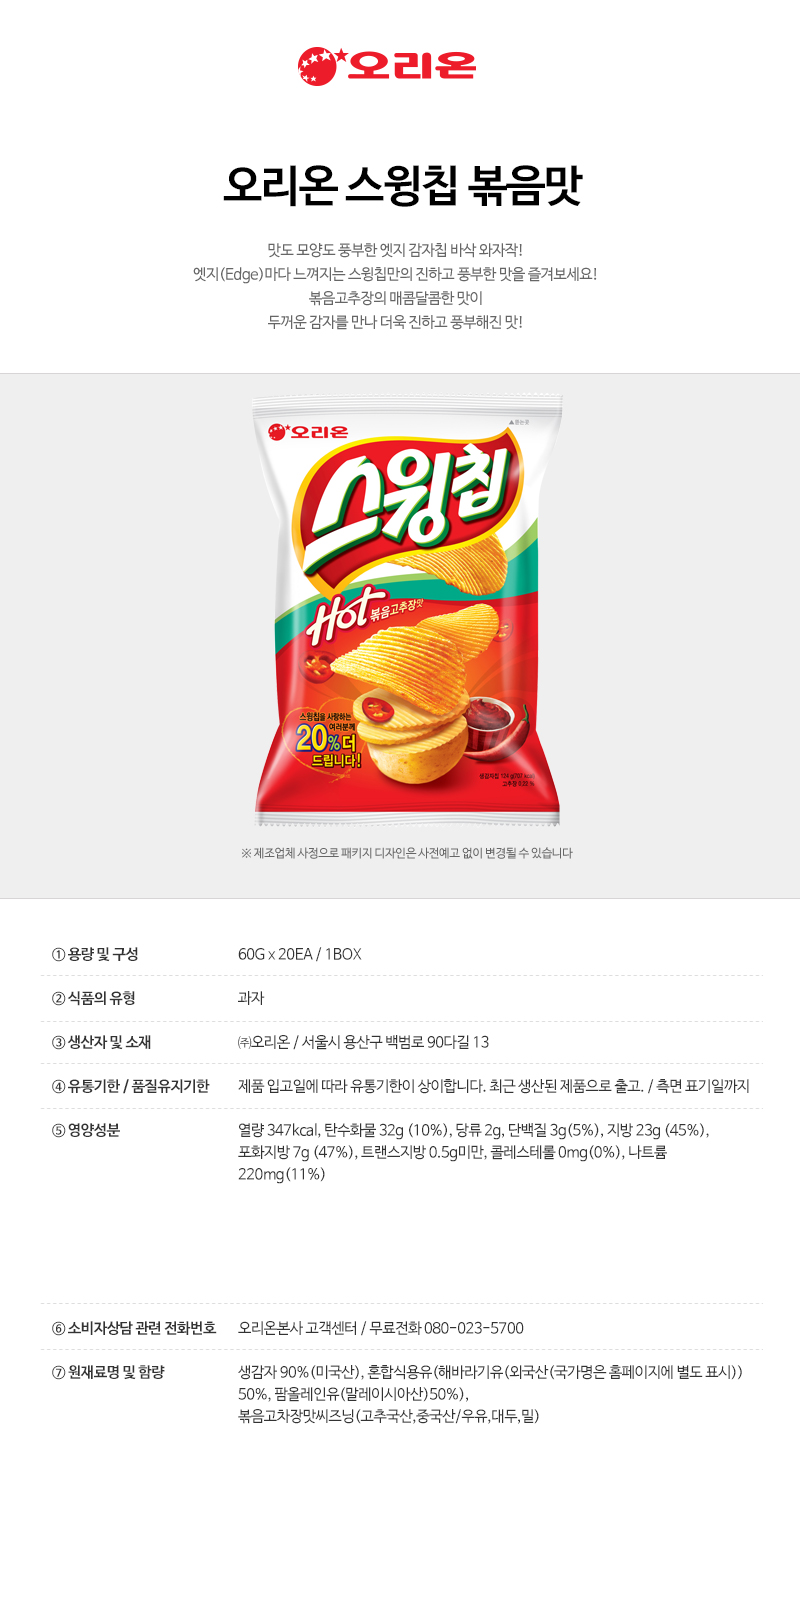 [ Orion ] SWING CHIP Red Pepper Paste Flavor 60g x 20